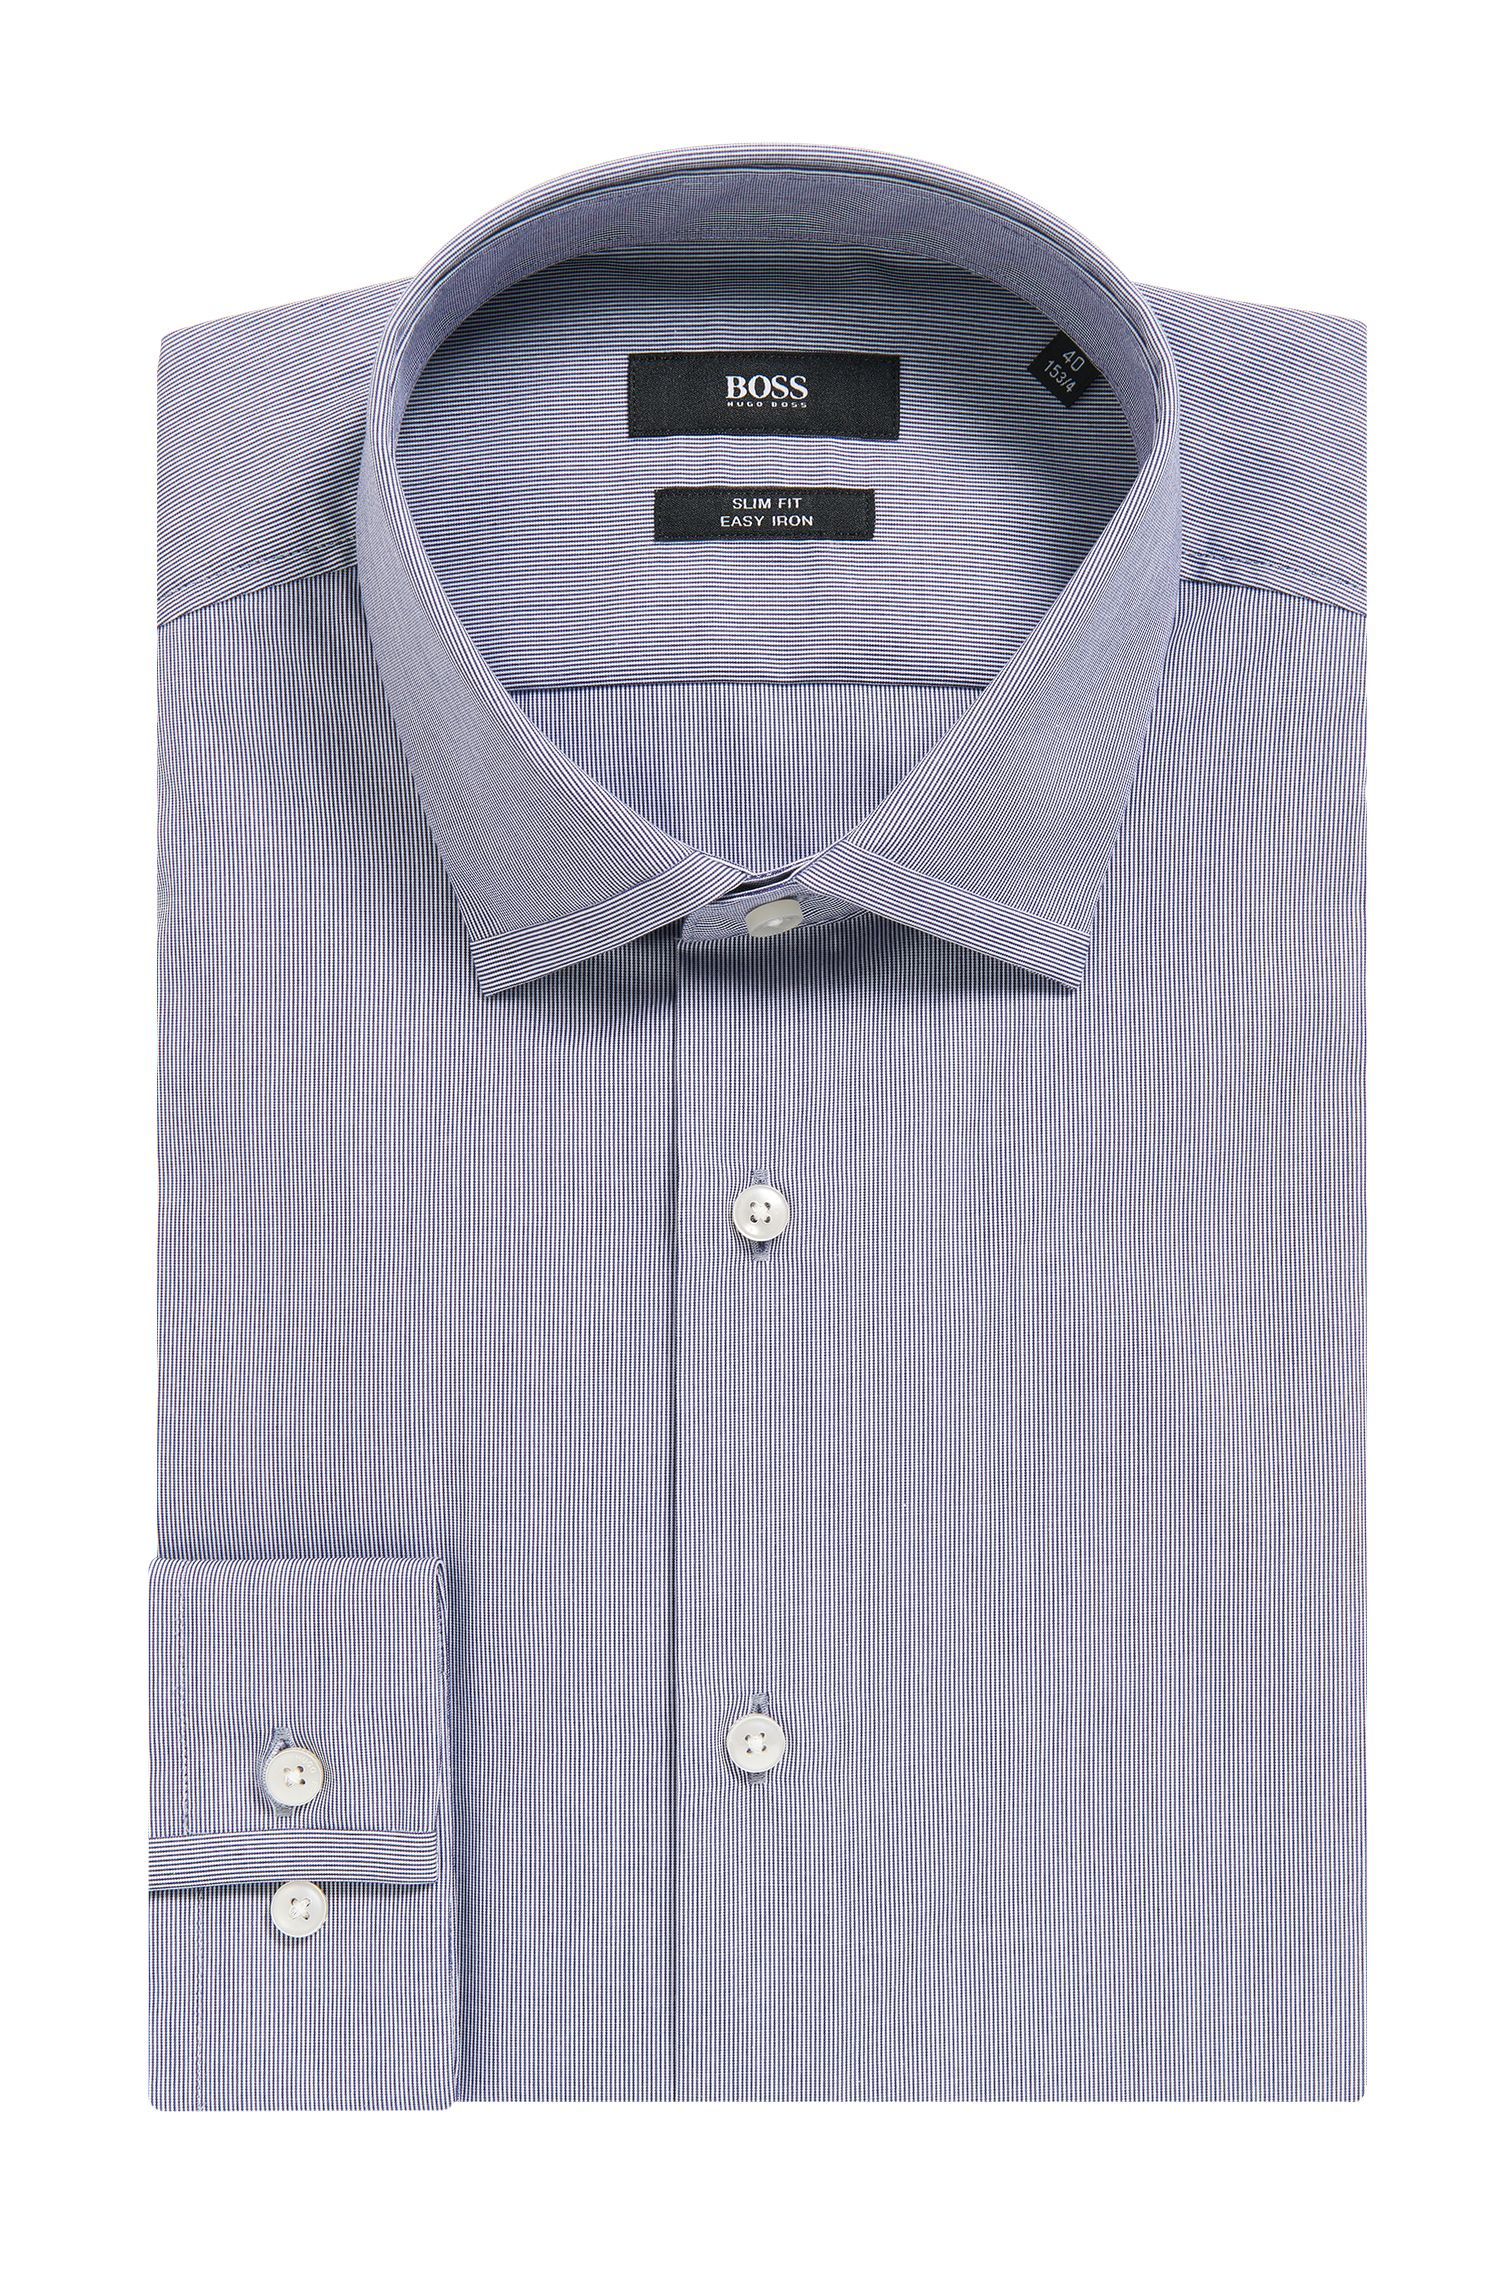 Micro-Striped Easy Iron Cotton Dress Shirt, Slim Fit | Iseo